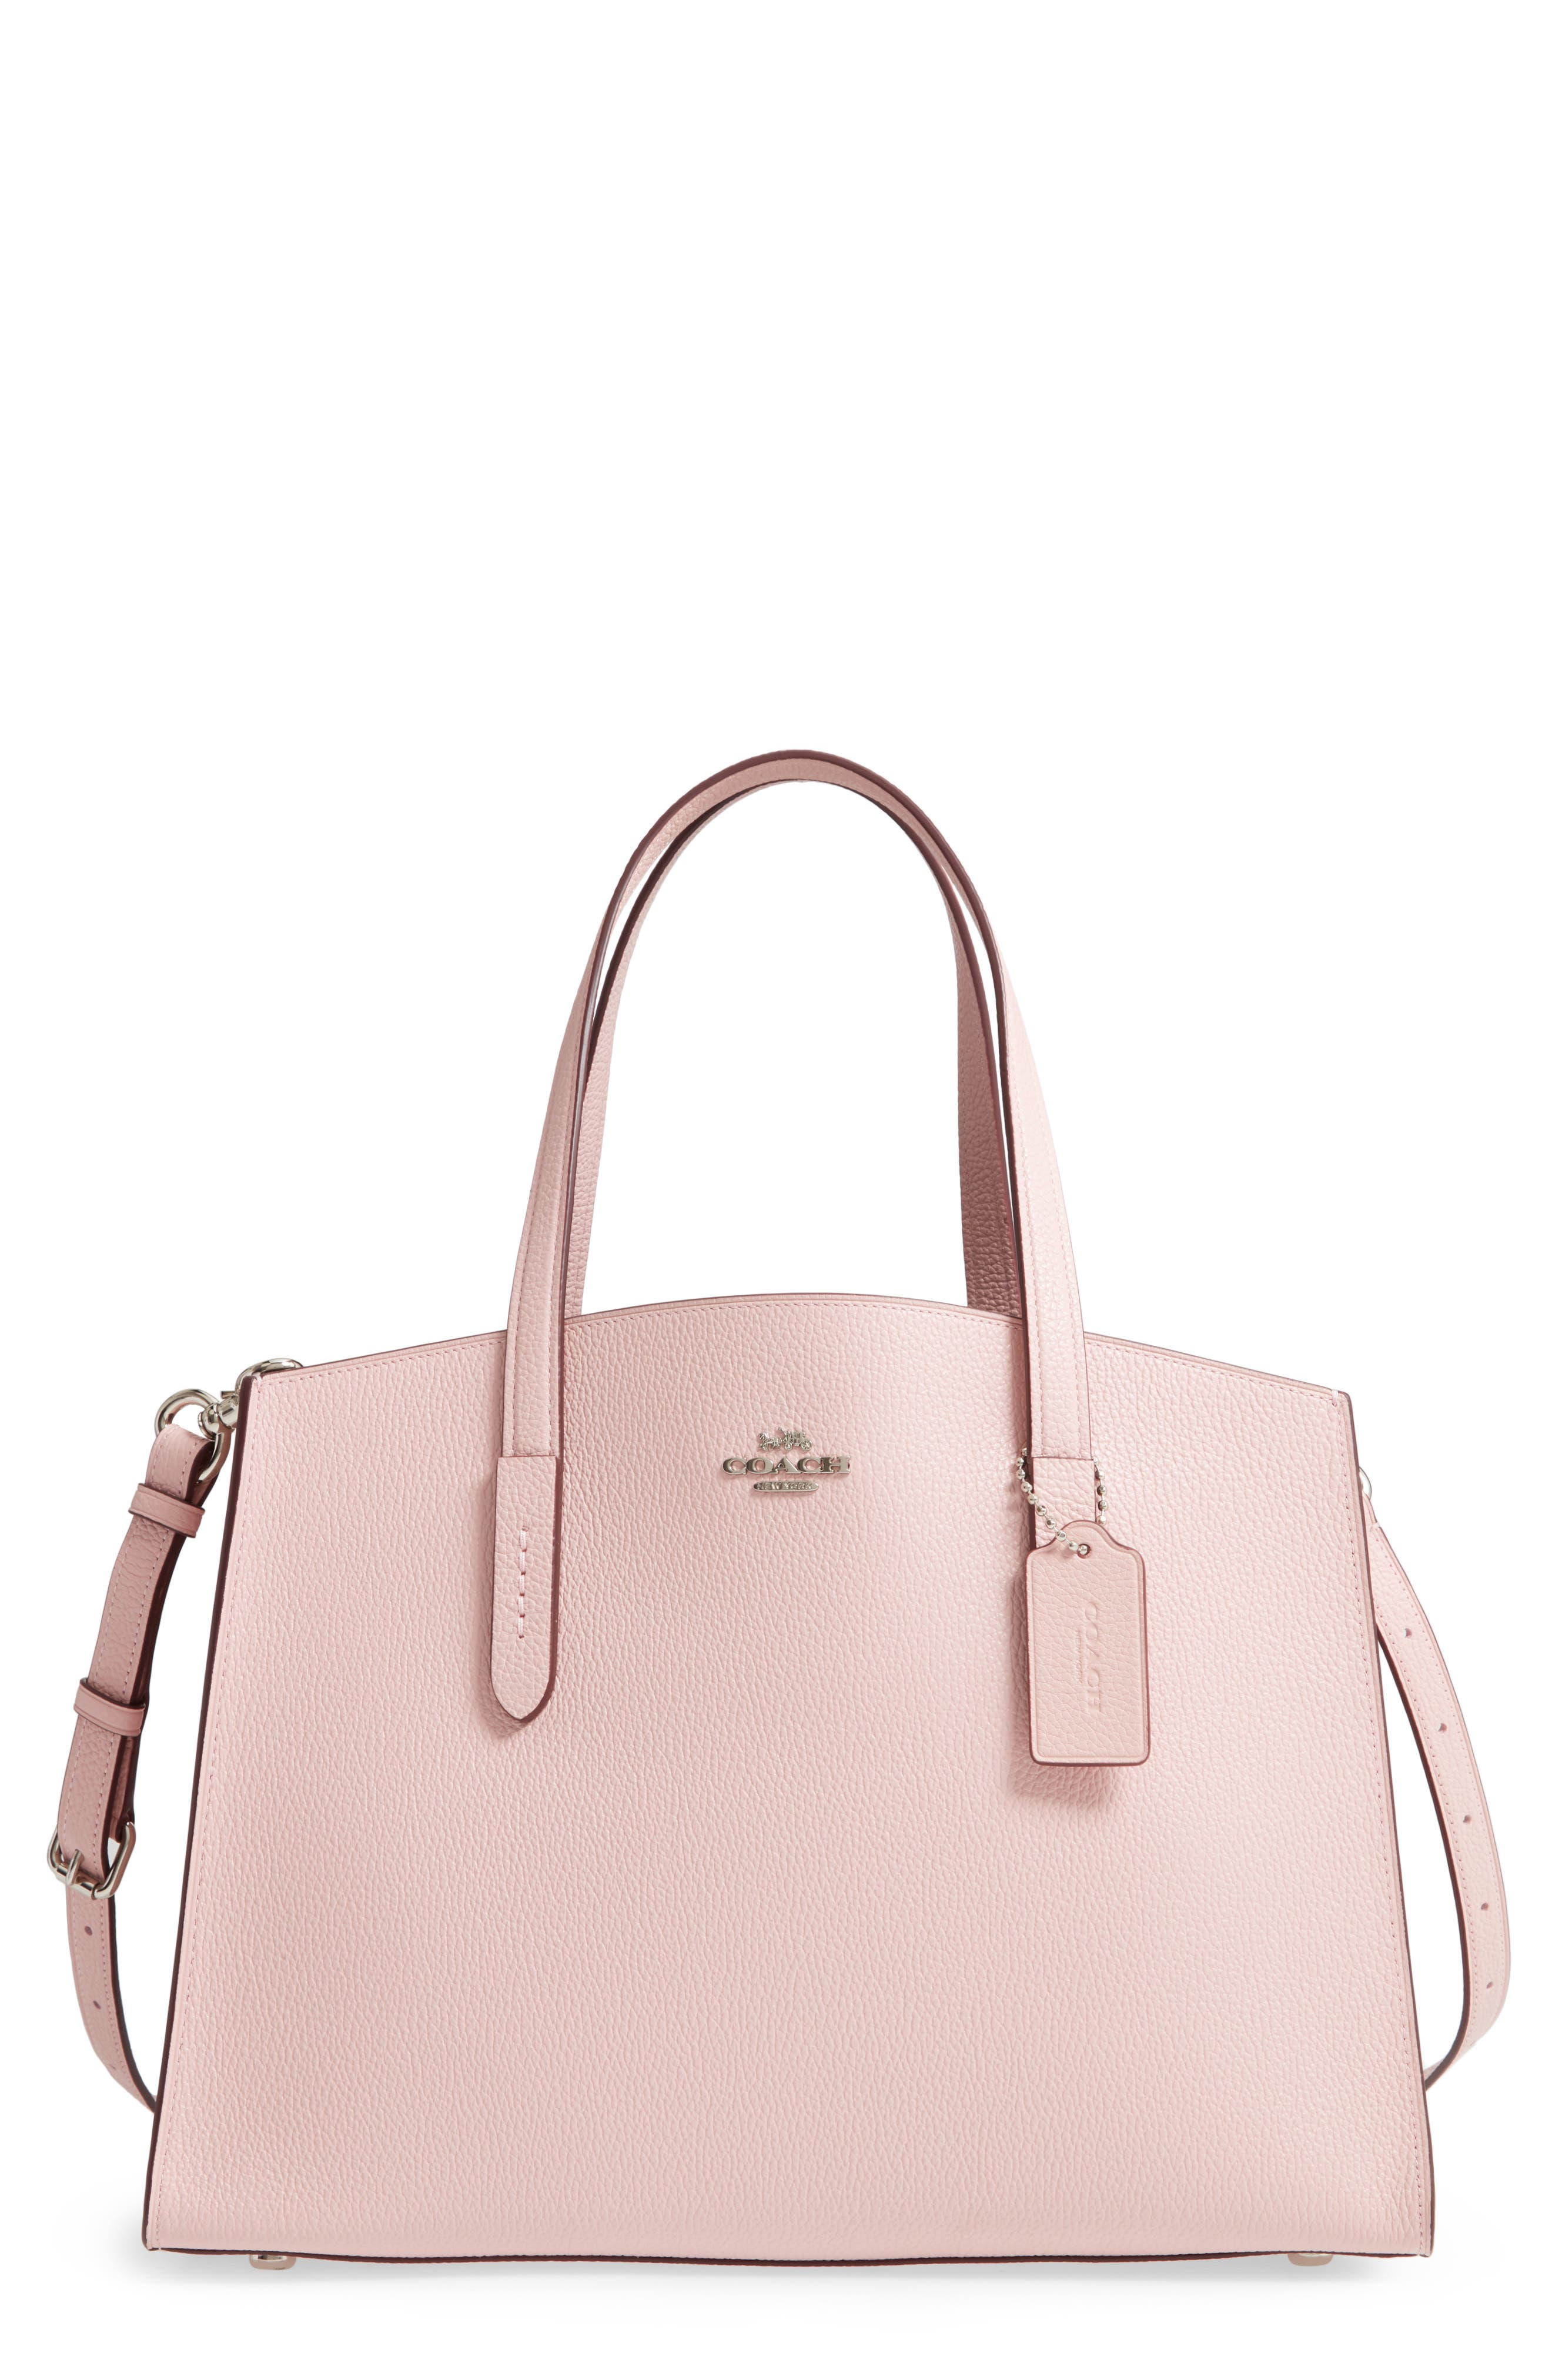 COACH, Charlie Leather Tote, Main thumbnail 1, color, BLOSSOM/ SILVER